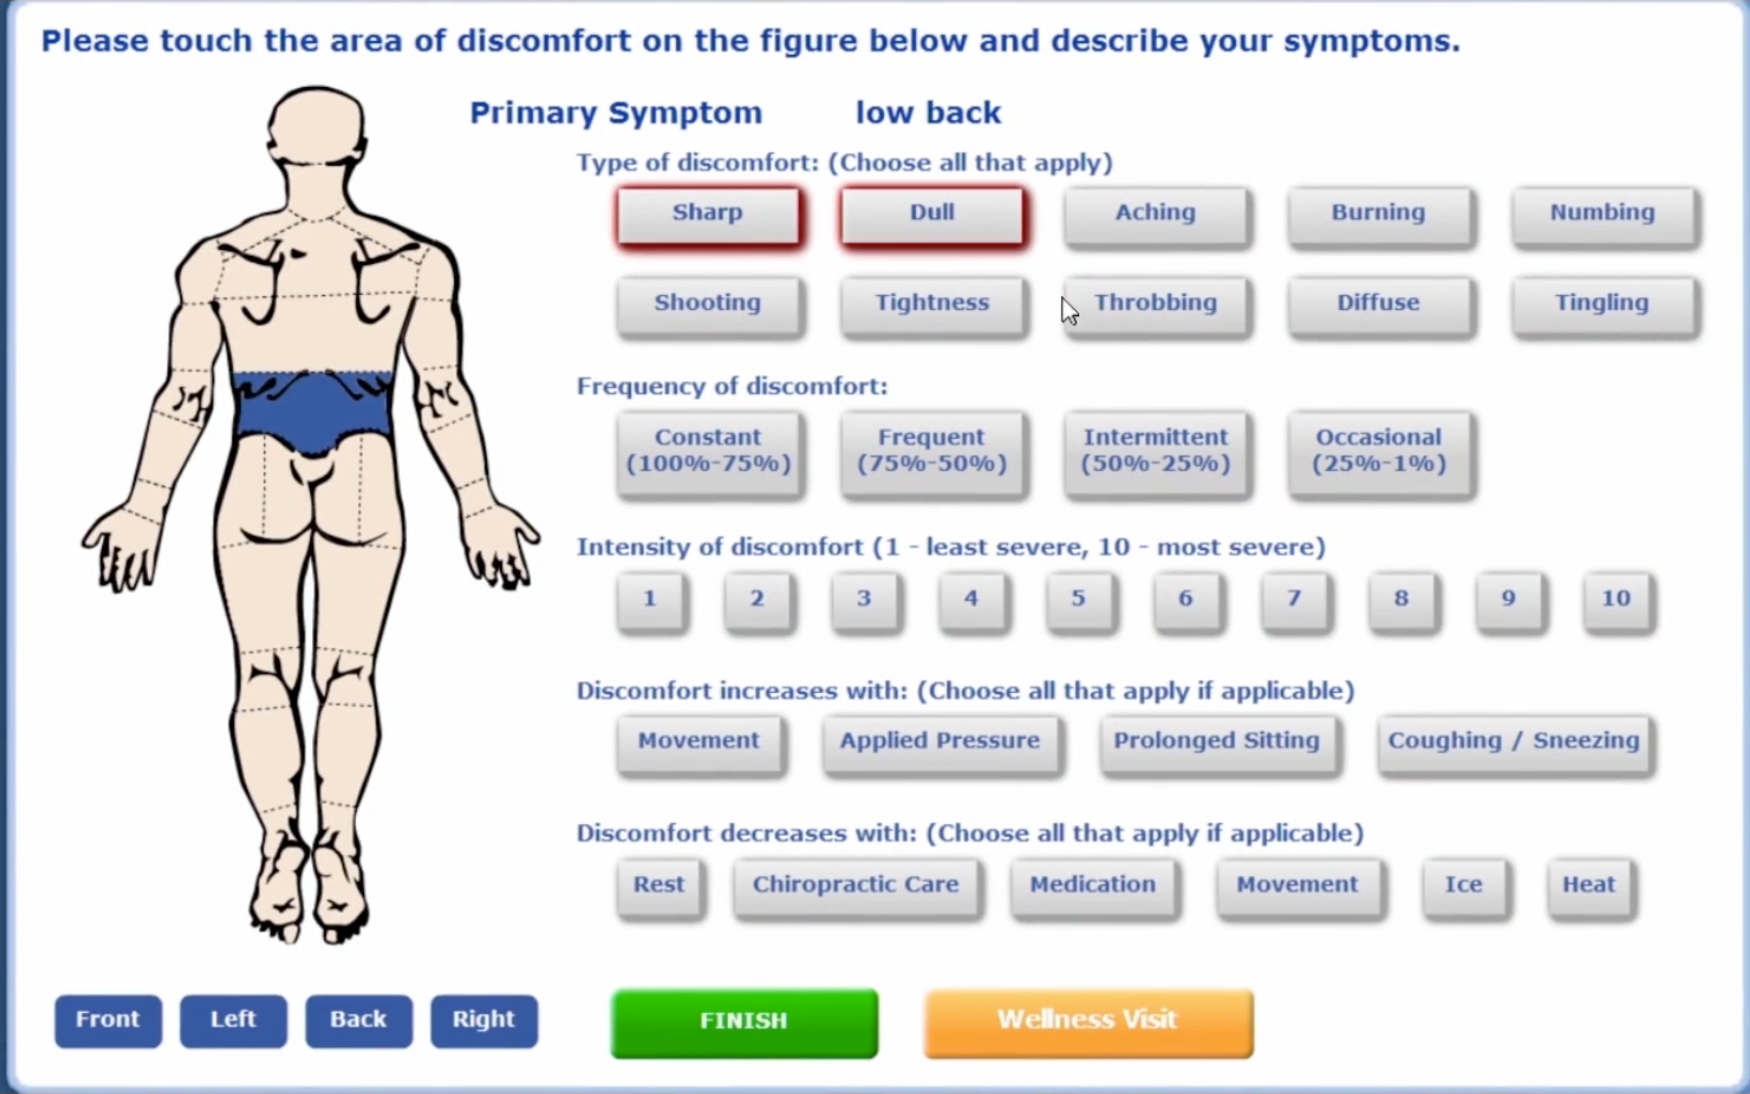 ChiroTouch Software - Symptom reporting